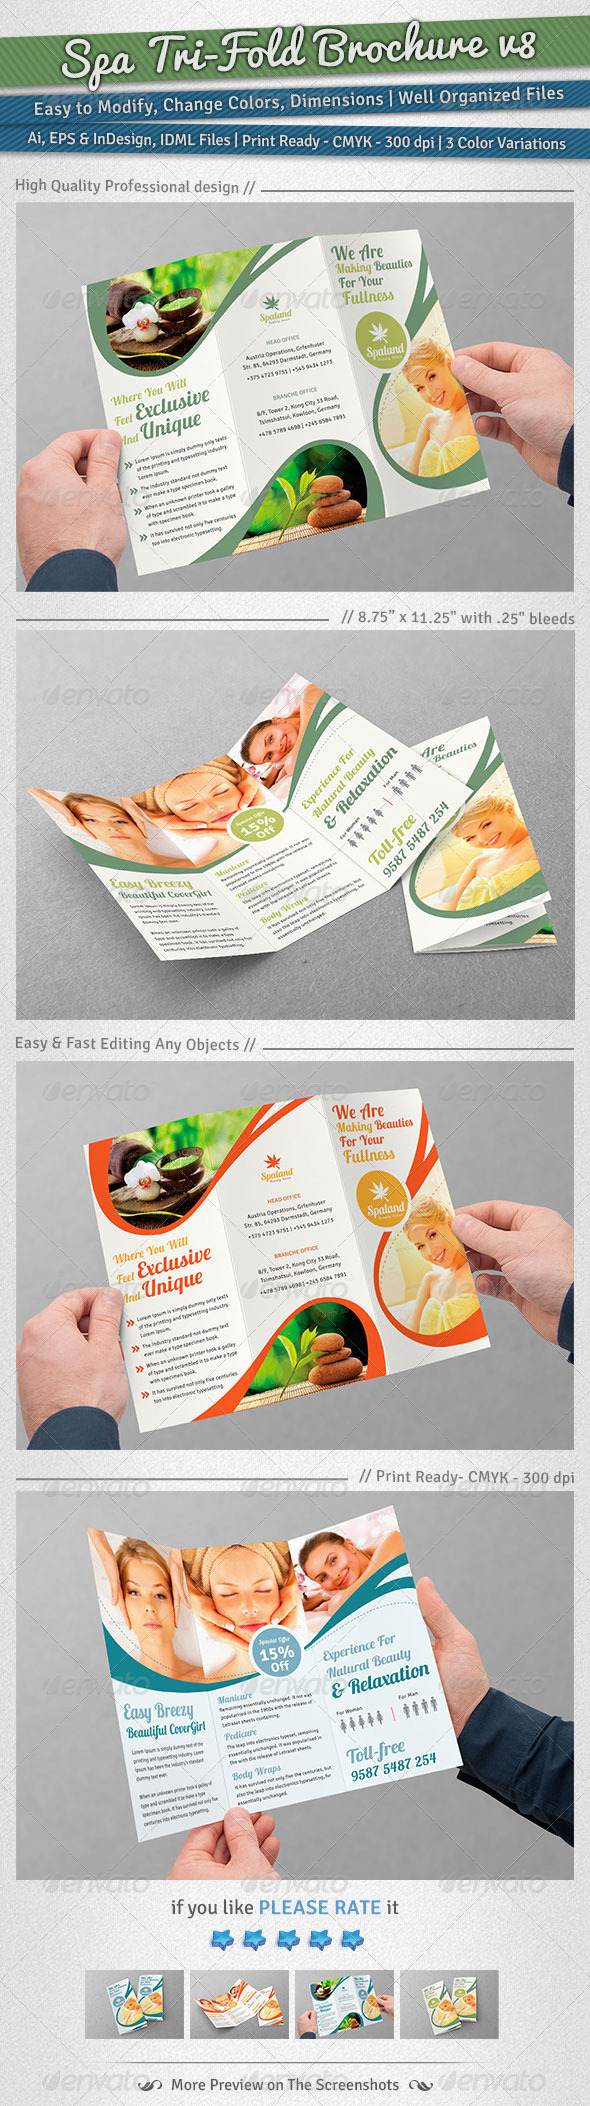 GraphicRiver Spa Tri-Fold Brochure Volume 8 6055586